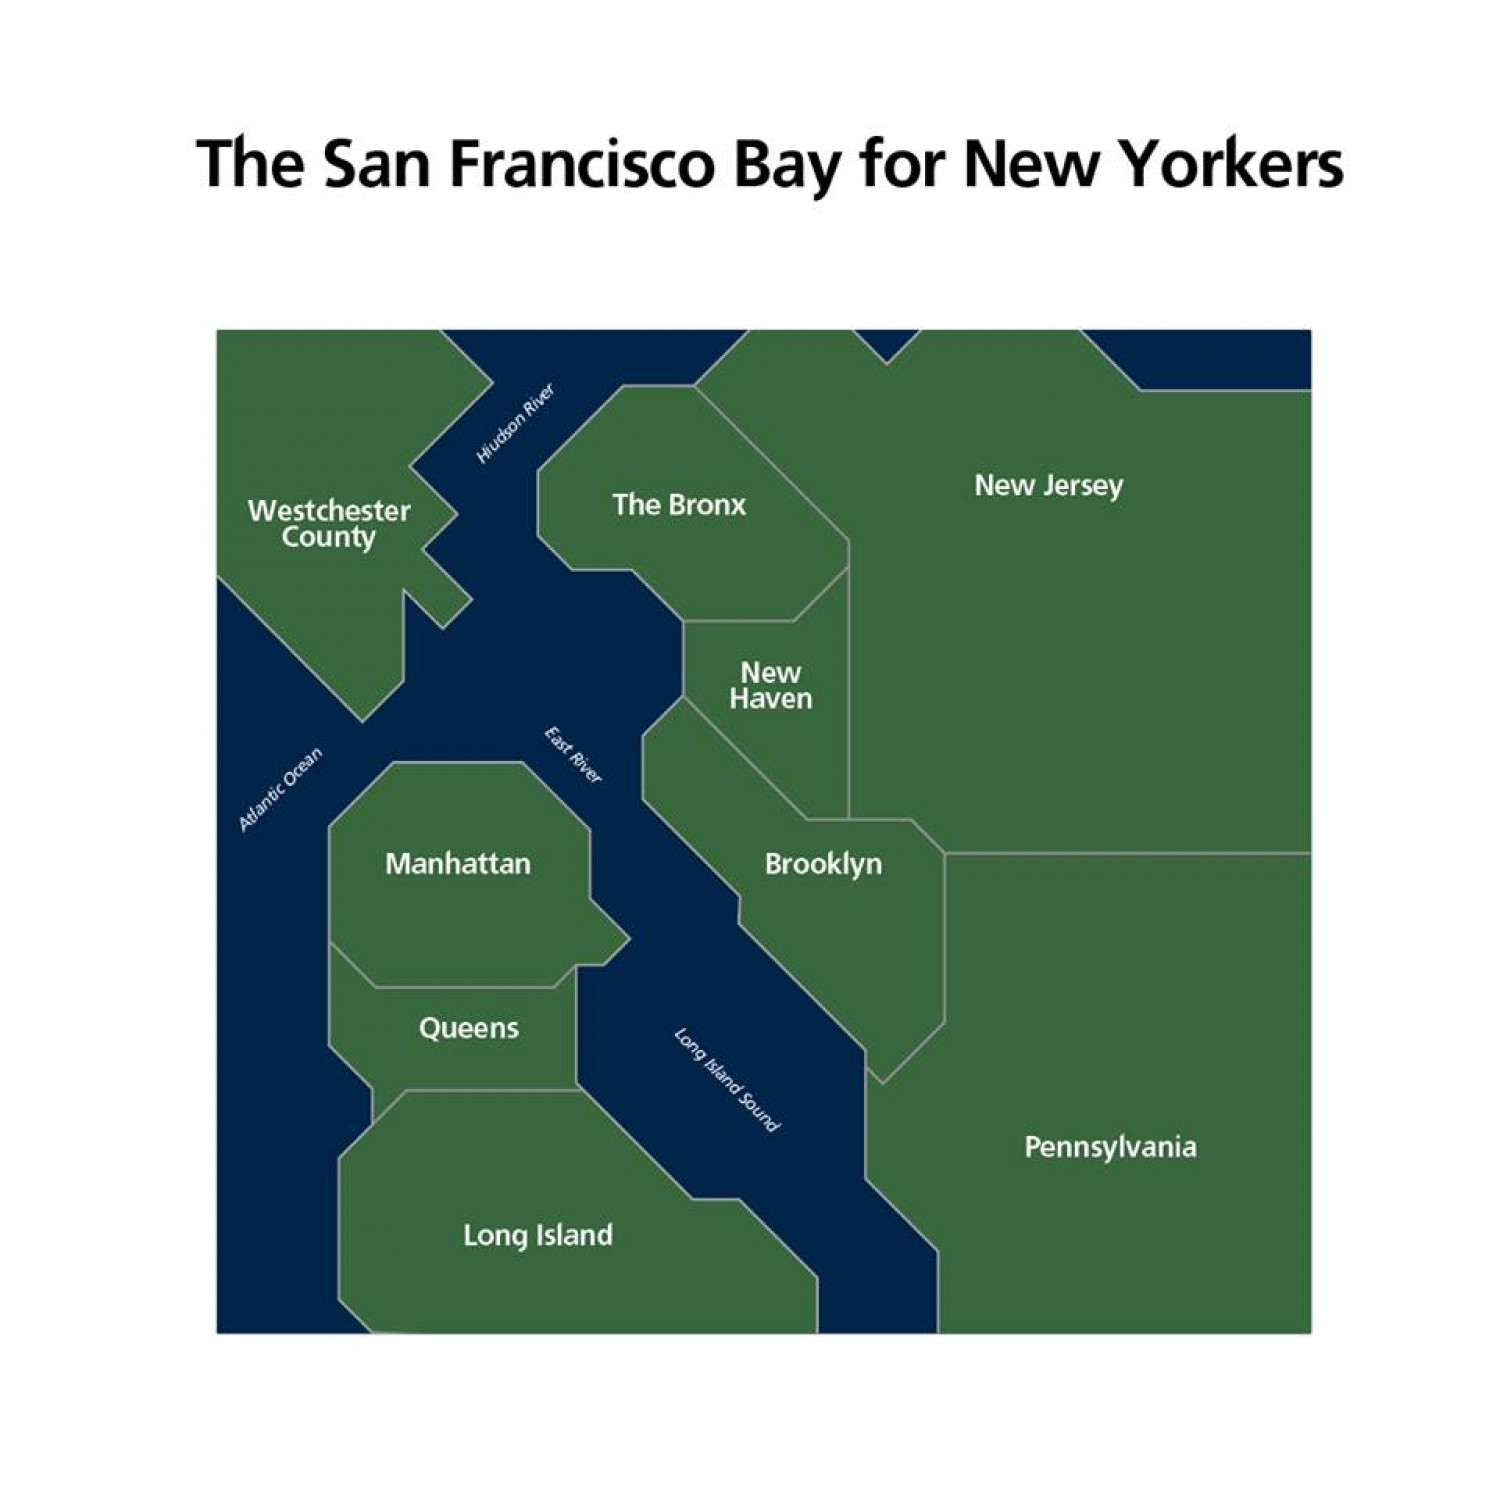 The San Francisco Bay for New Yorkers Infographic